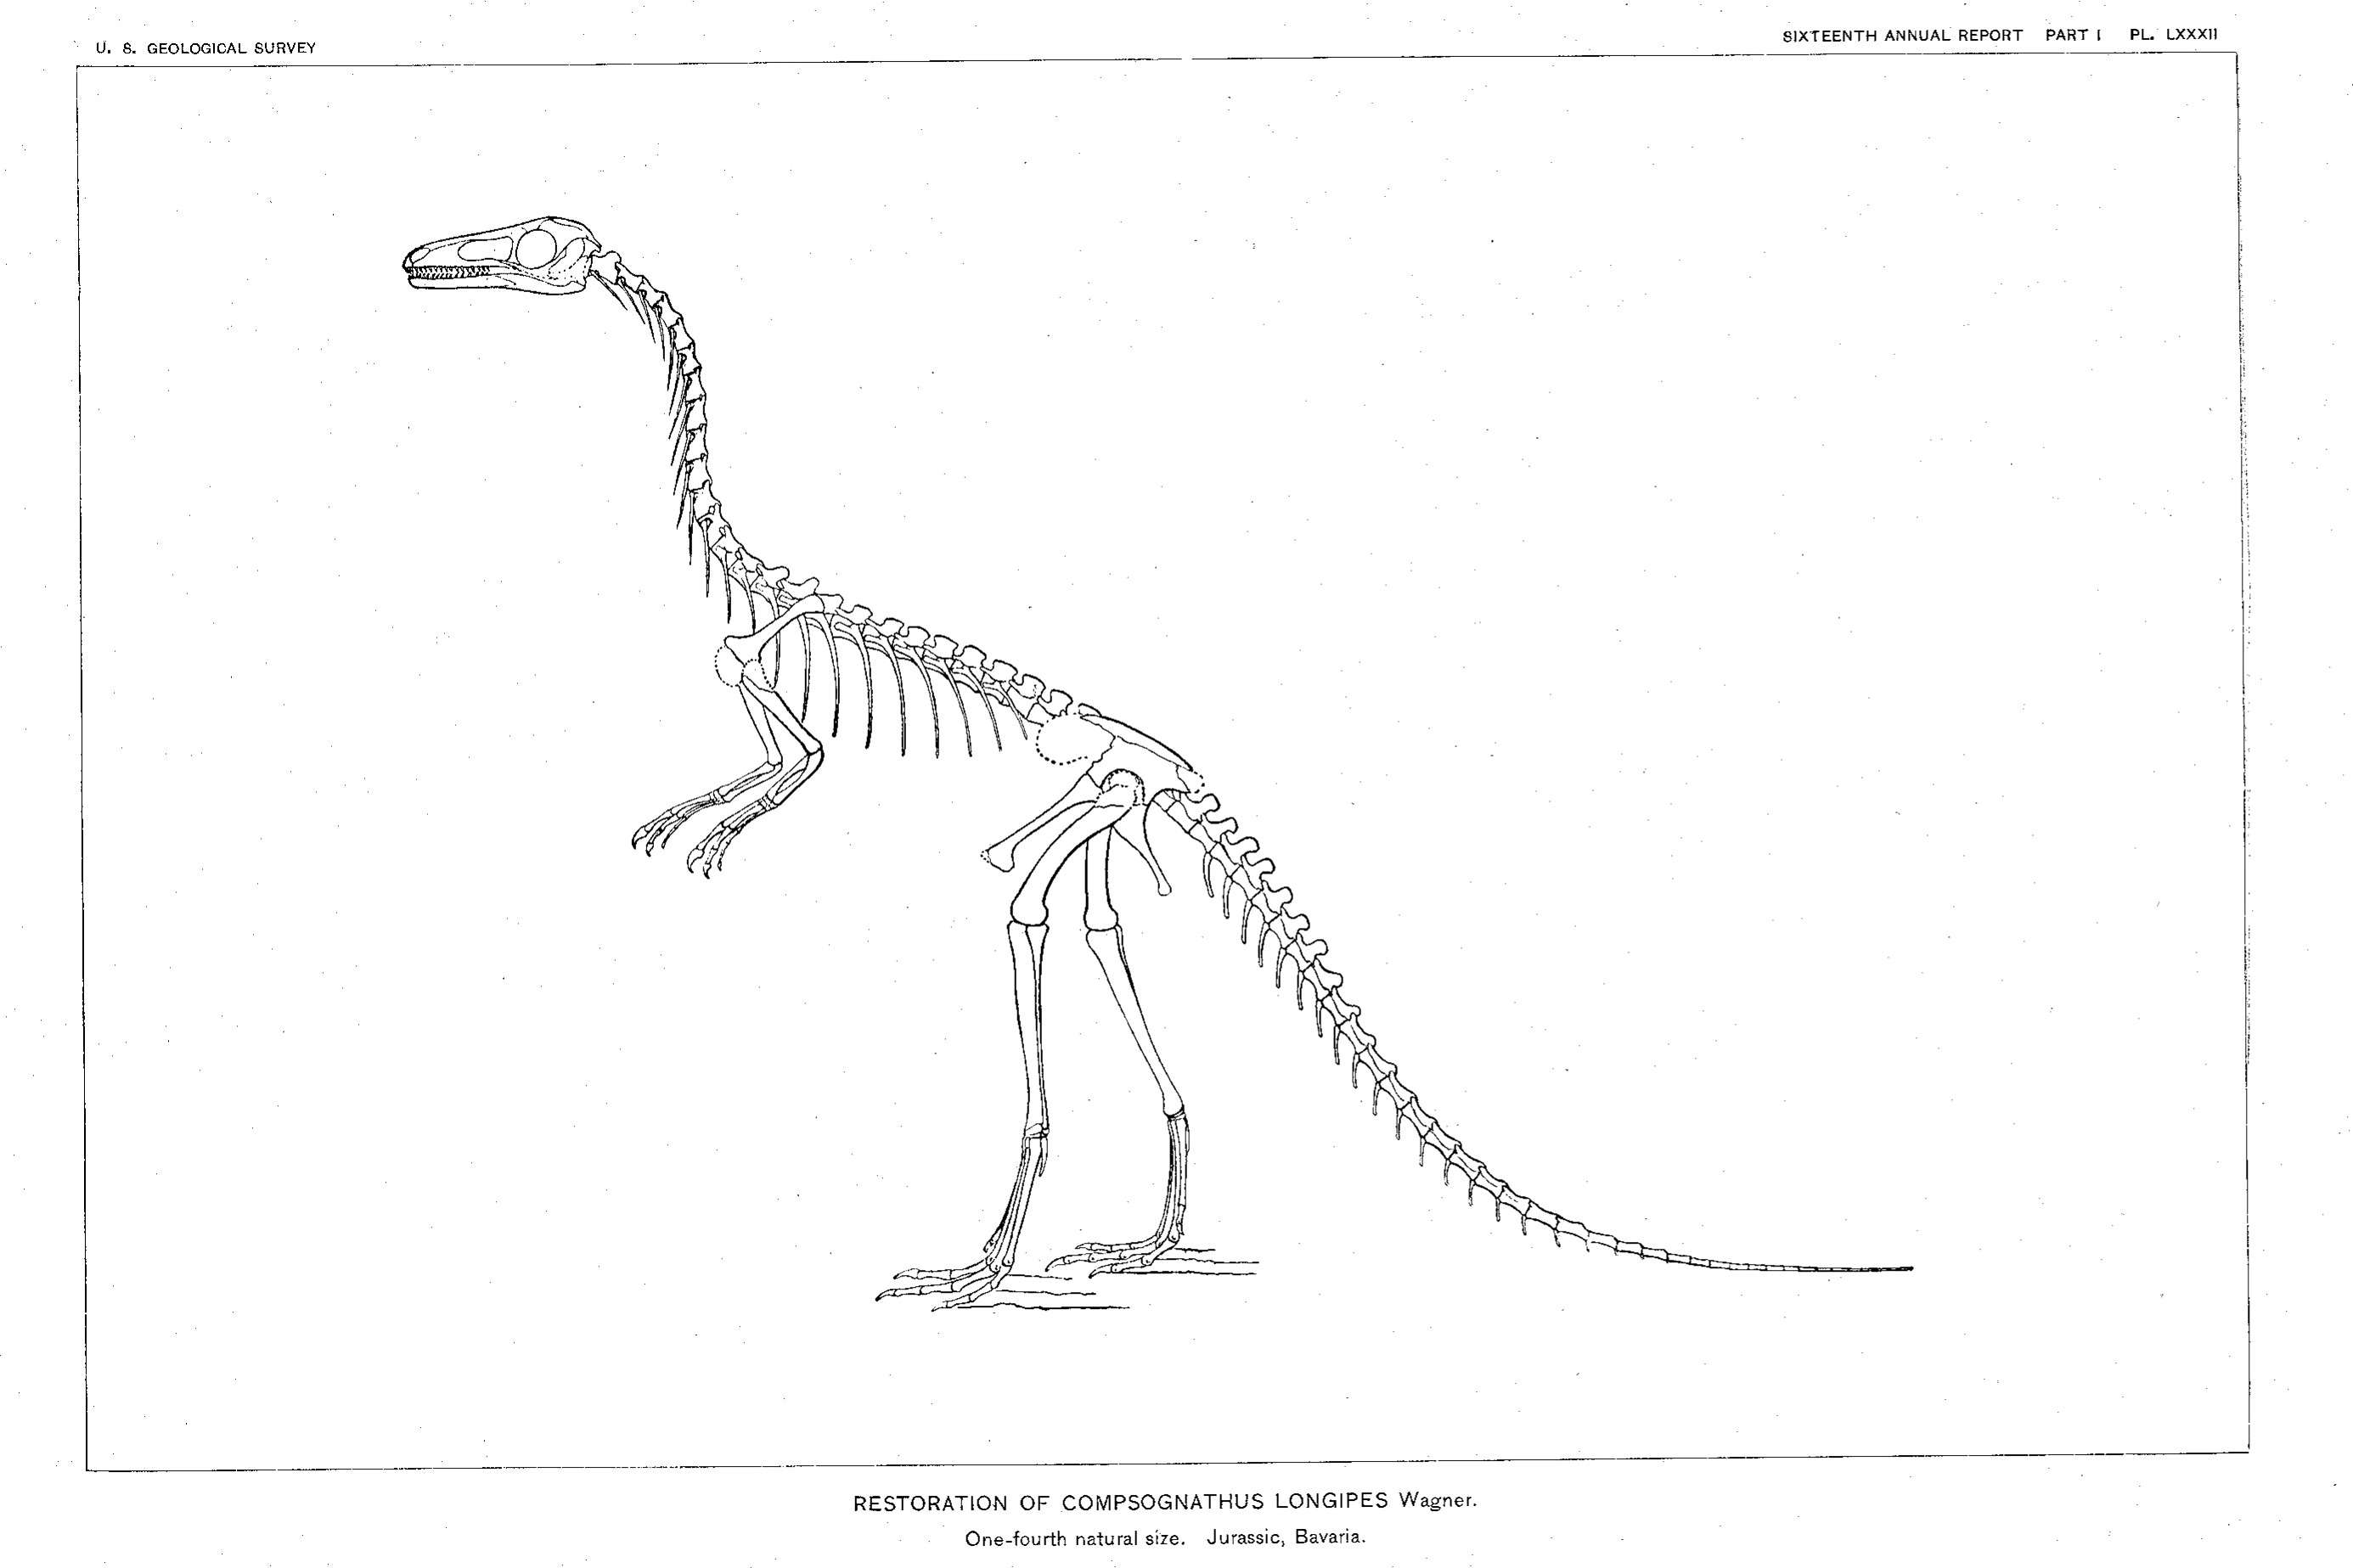 A sketch of the full compsognathus skeleton by Marsh, 1896